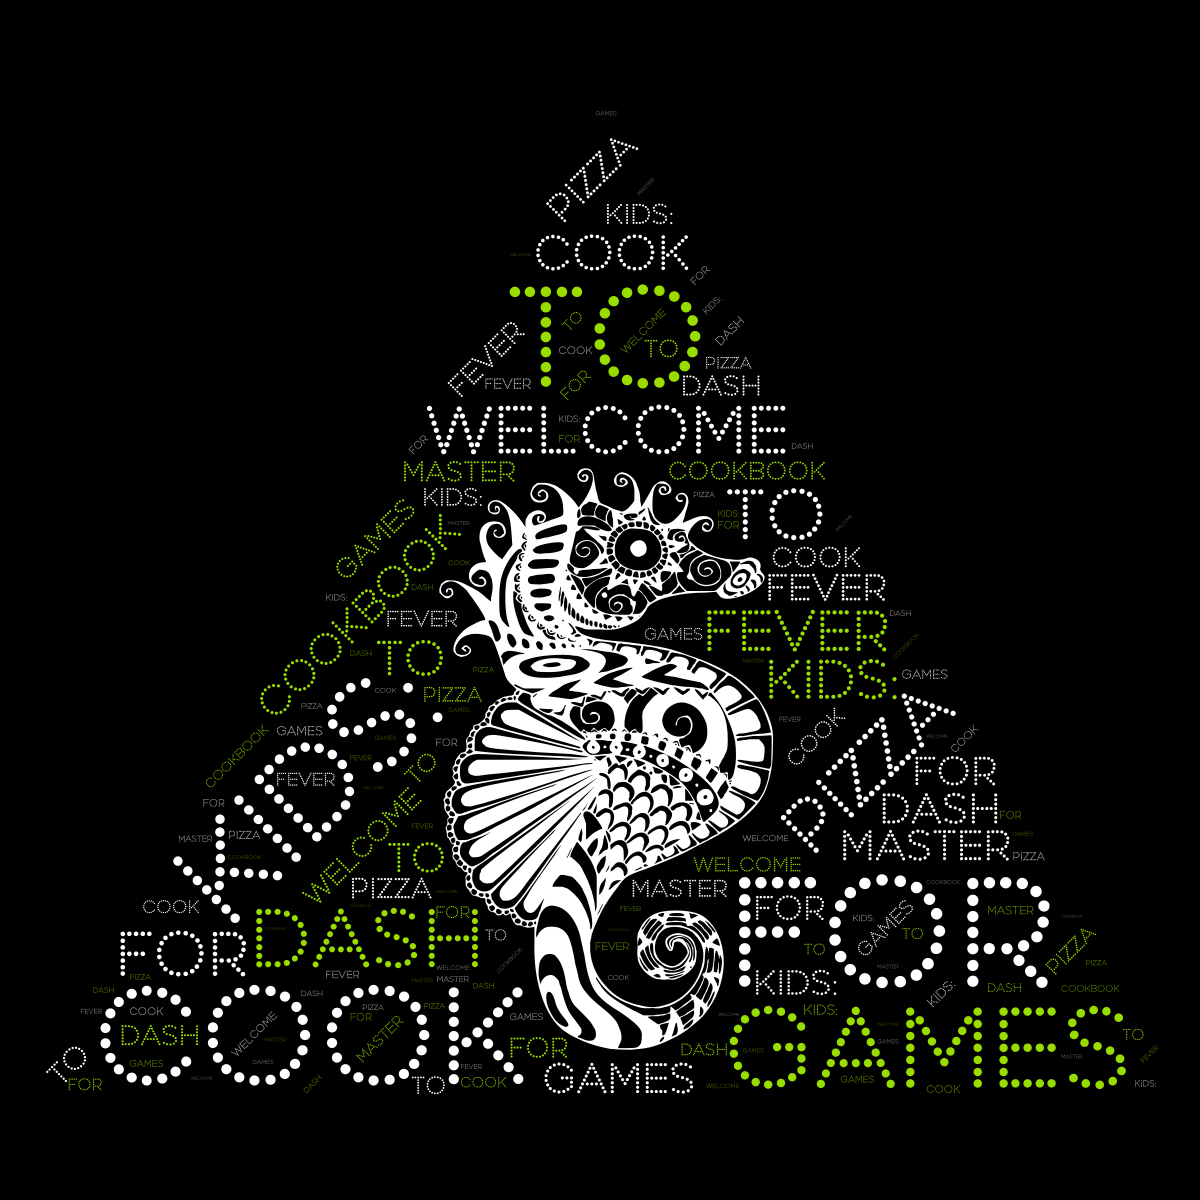 Cook Games for Kids: Welcome to Pizza Dash Fever CookBook Master